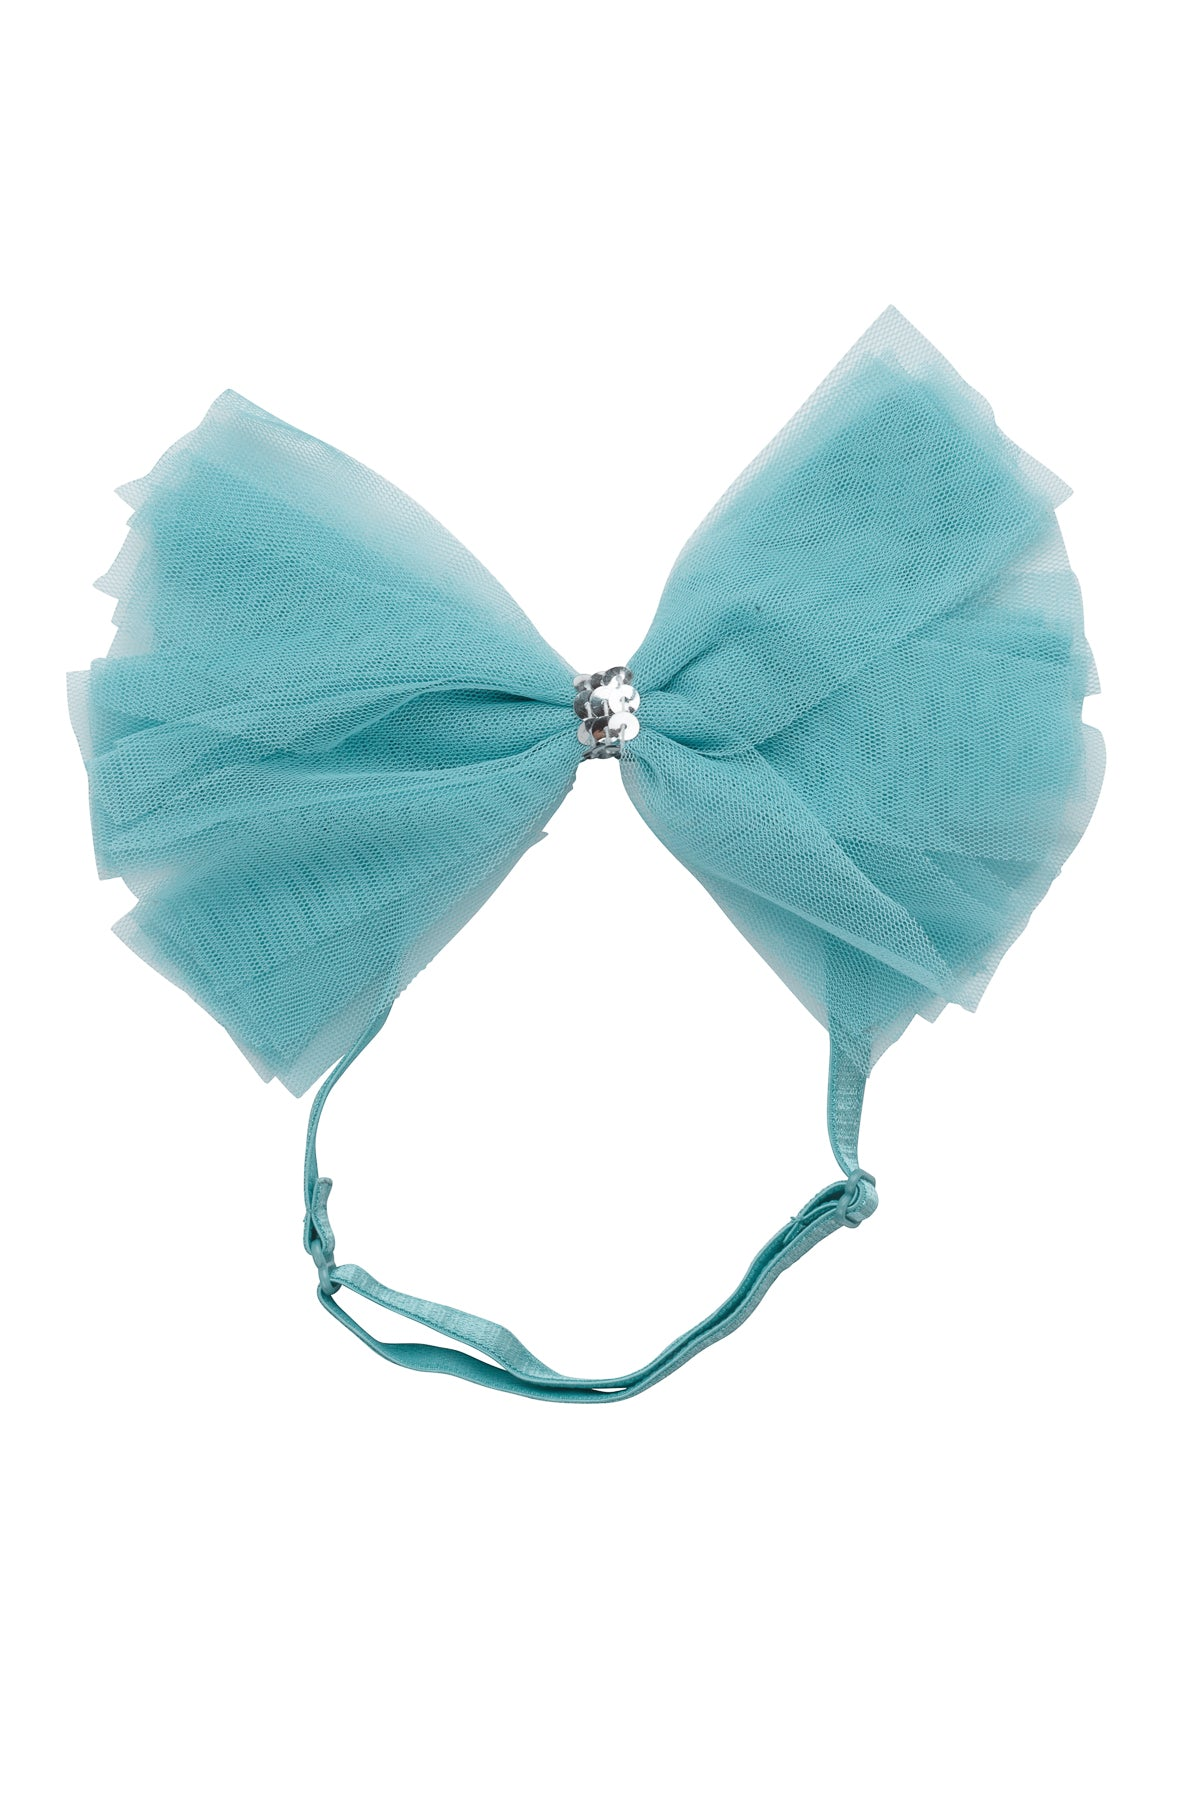 Soft Tulle Strips CLIP + WRAP - Turquoise - PROJECT 6, modest fashion